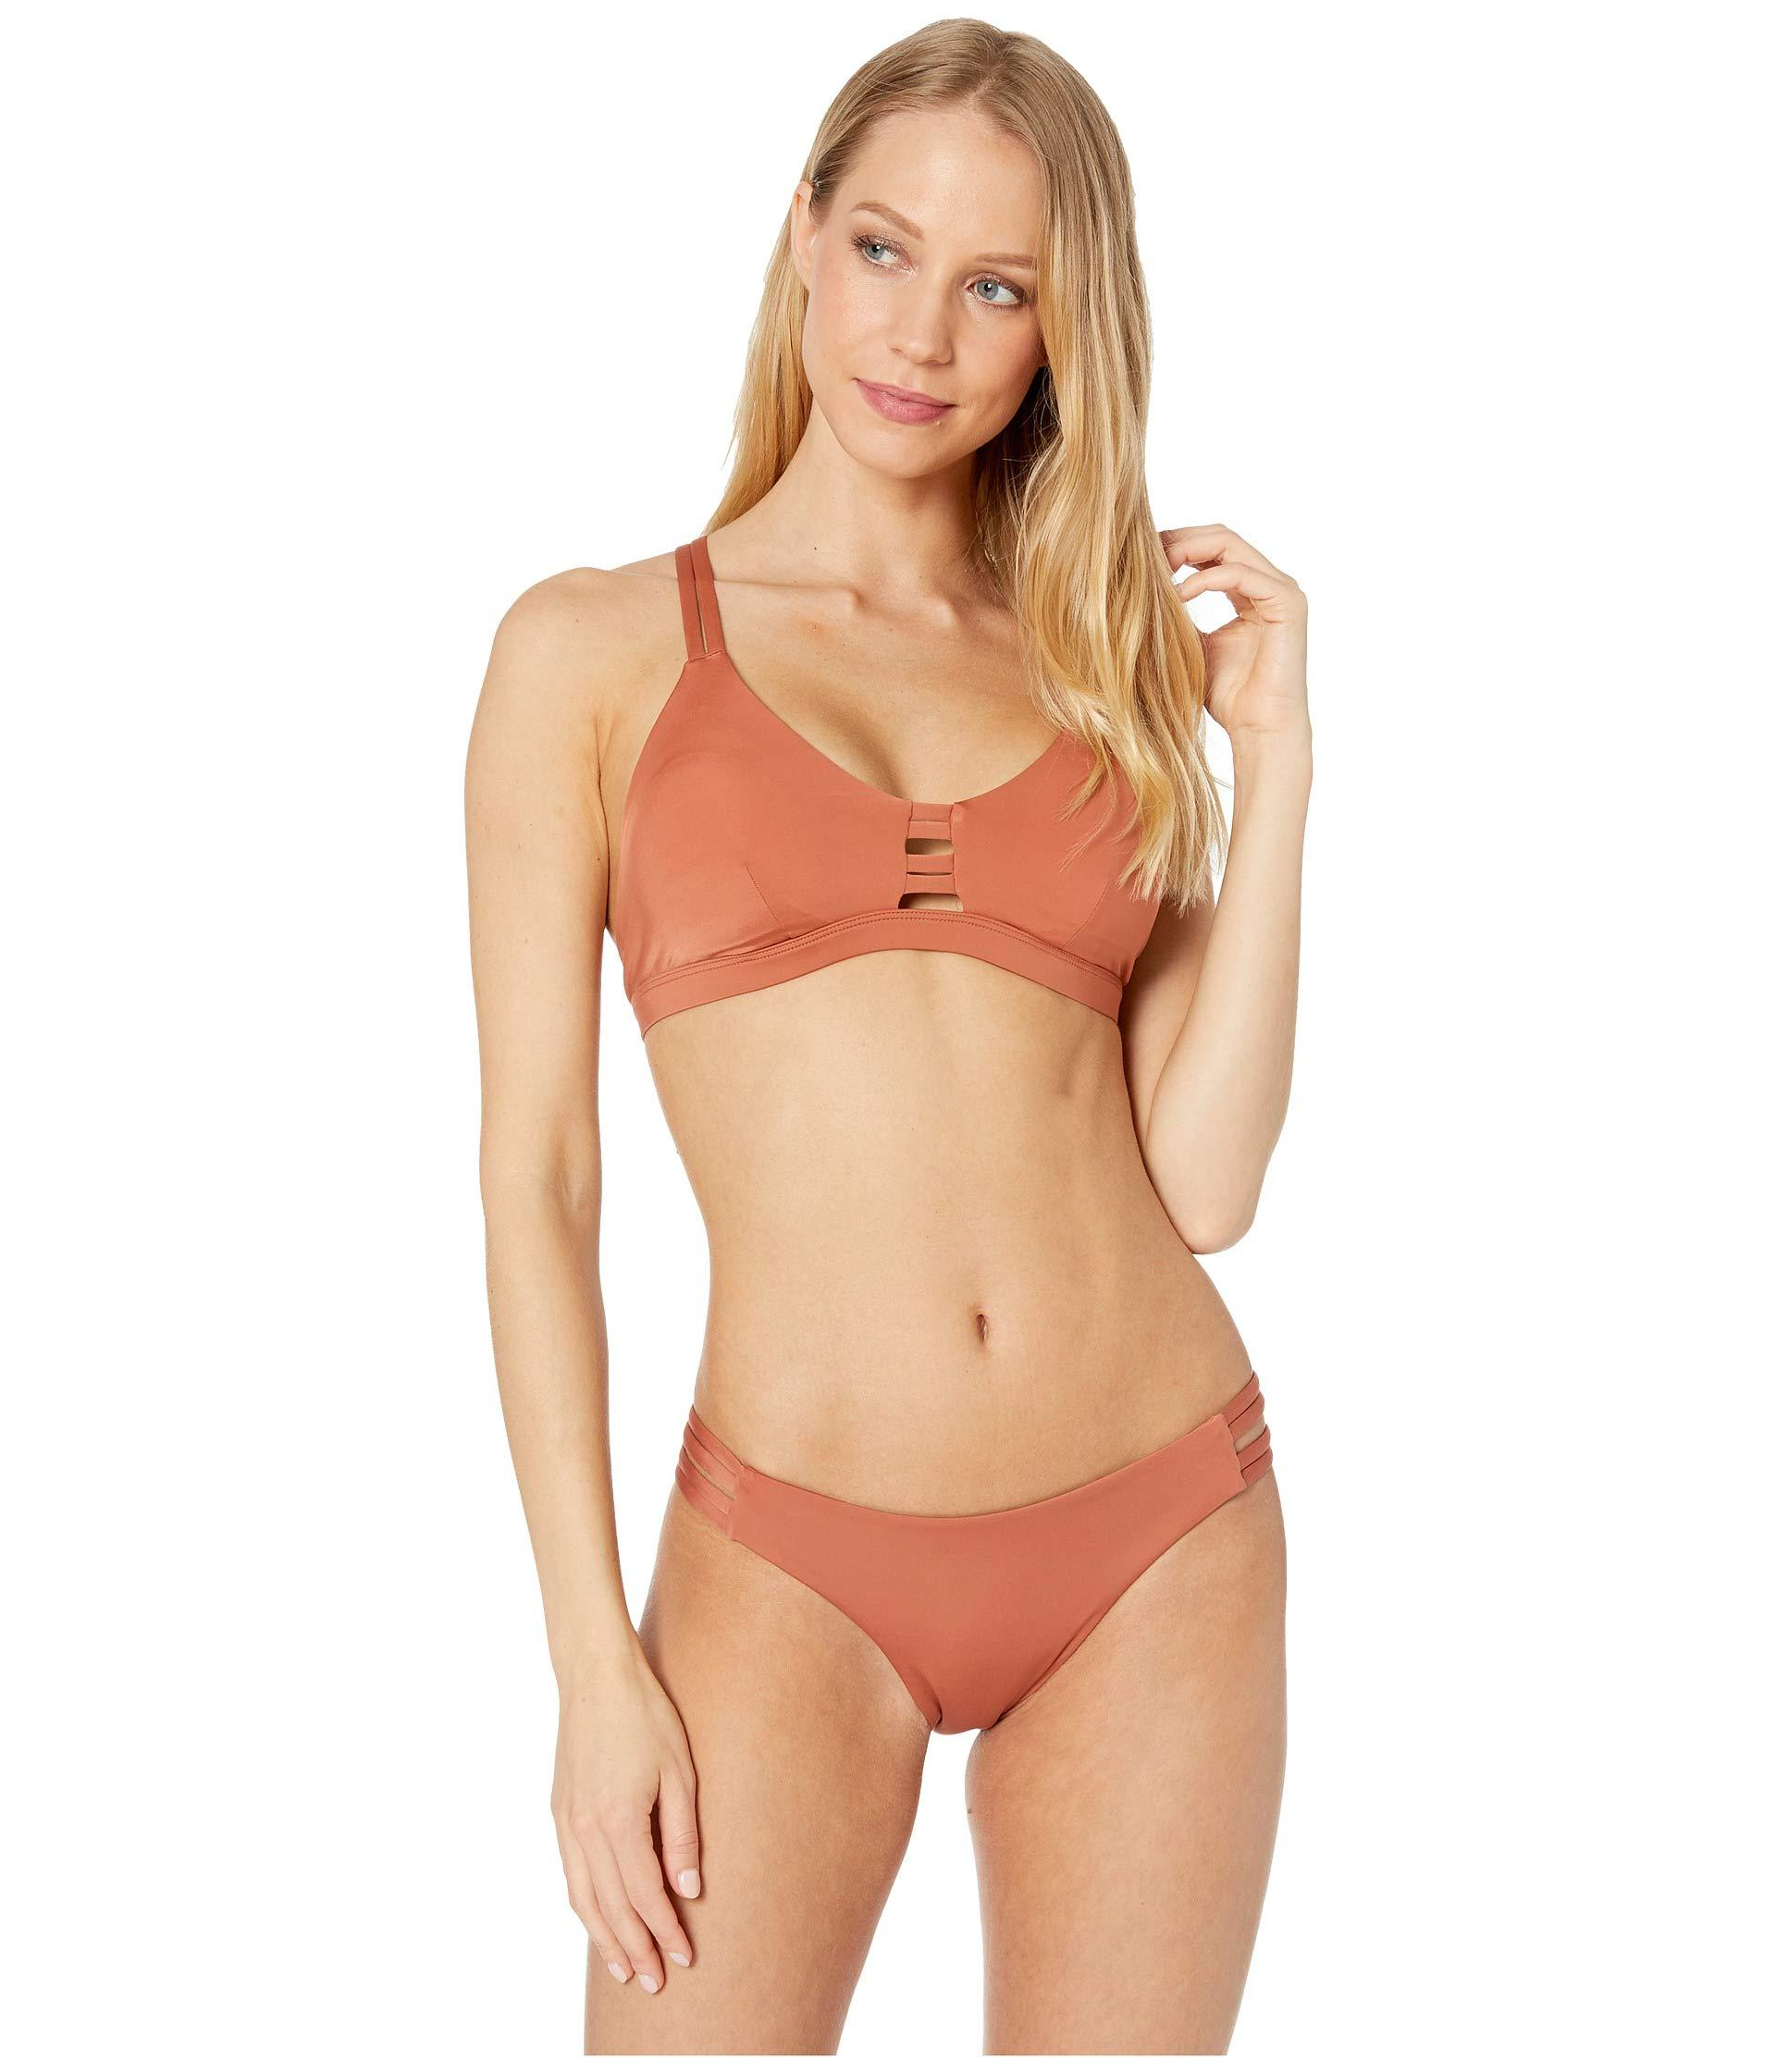 a718eb59680 Hurley - Brown Quick Dry Max Surf Bottoms (celestial Teal) Women's Swimwear  - Lyst. View fullscreen